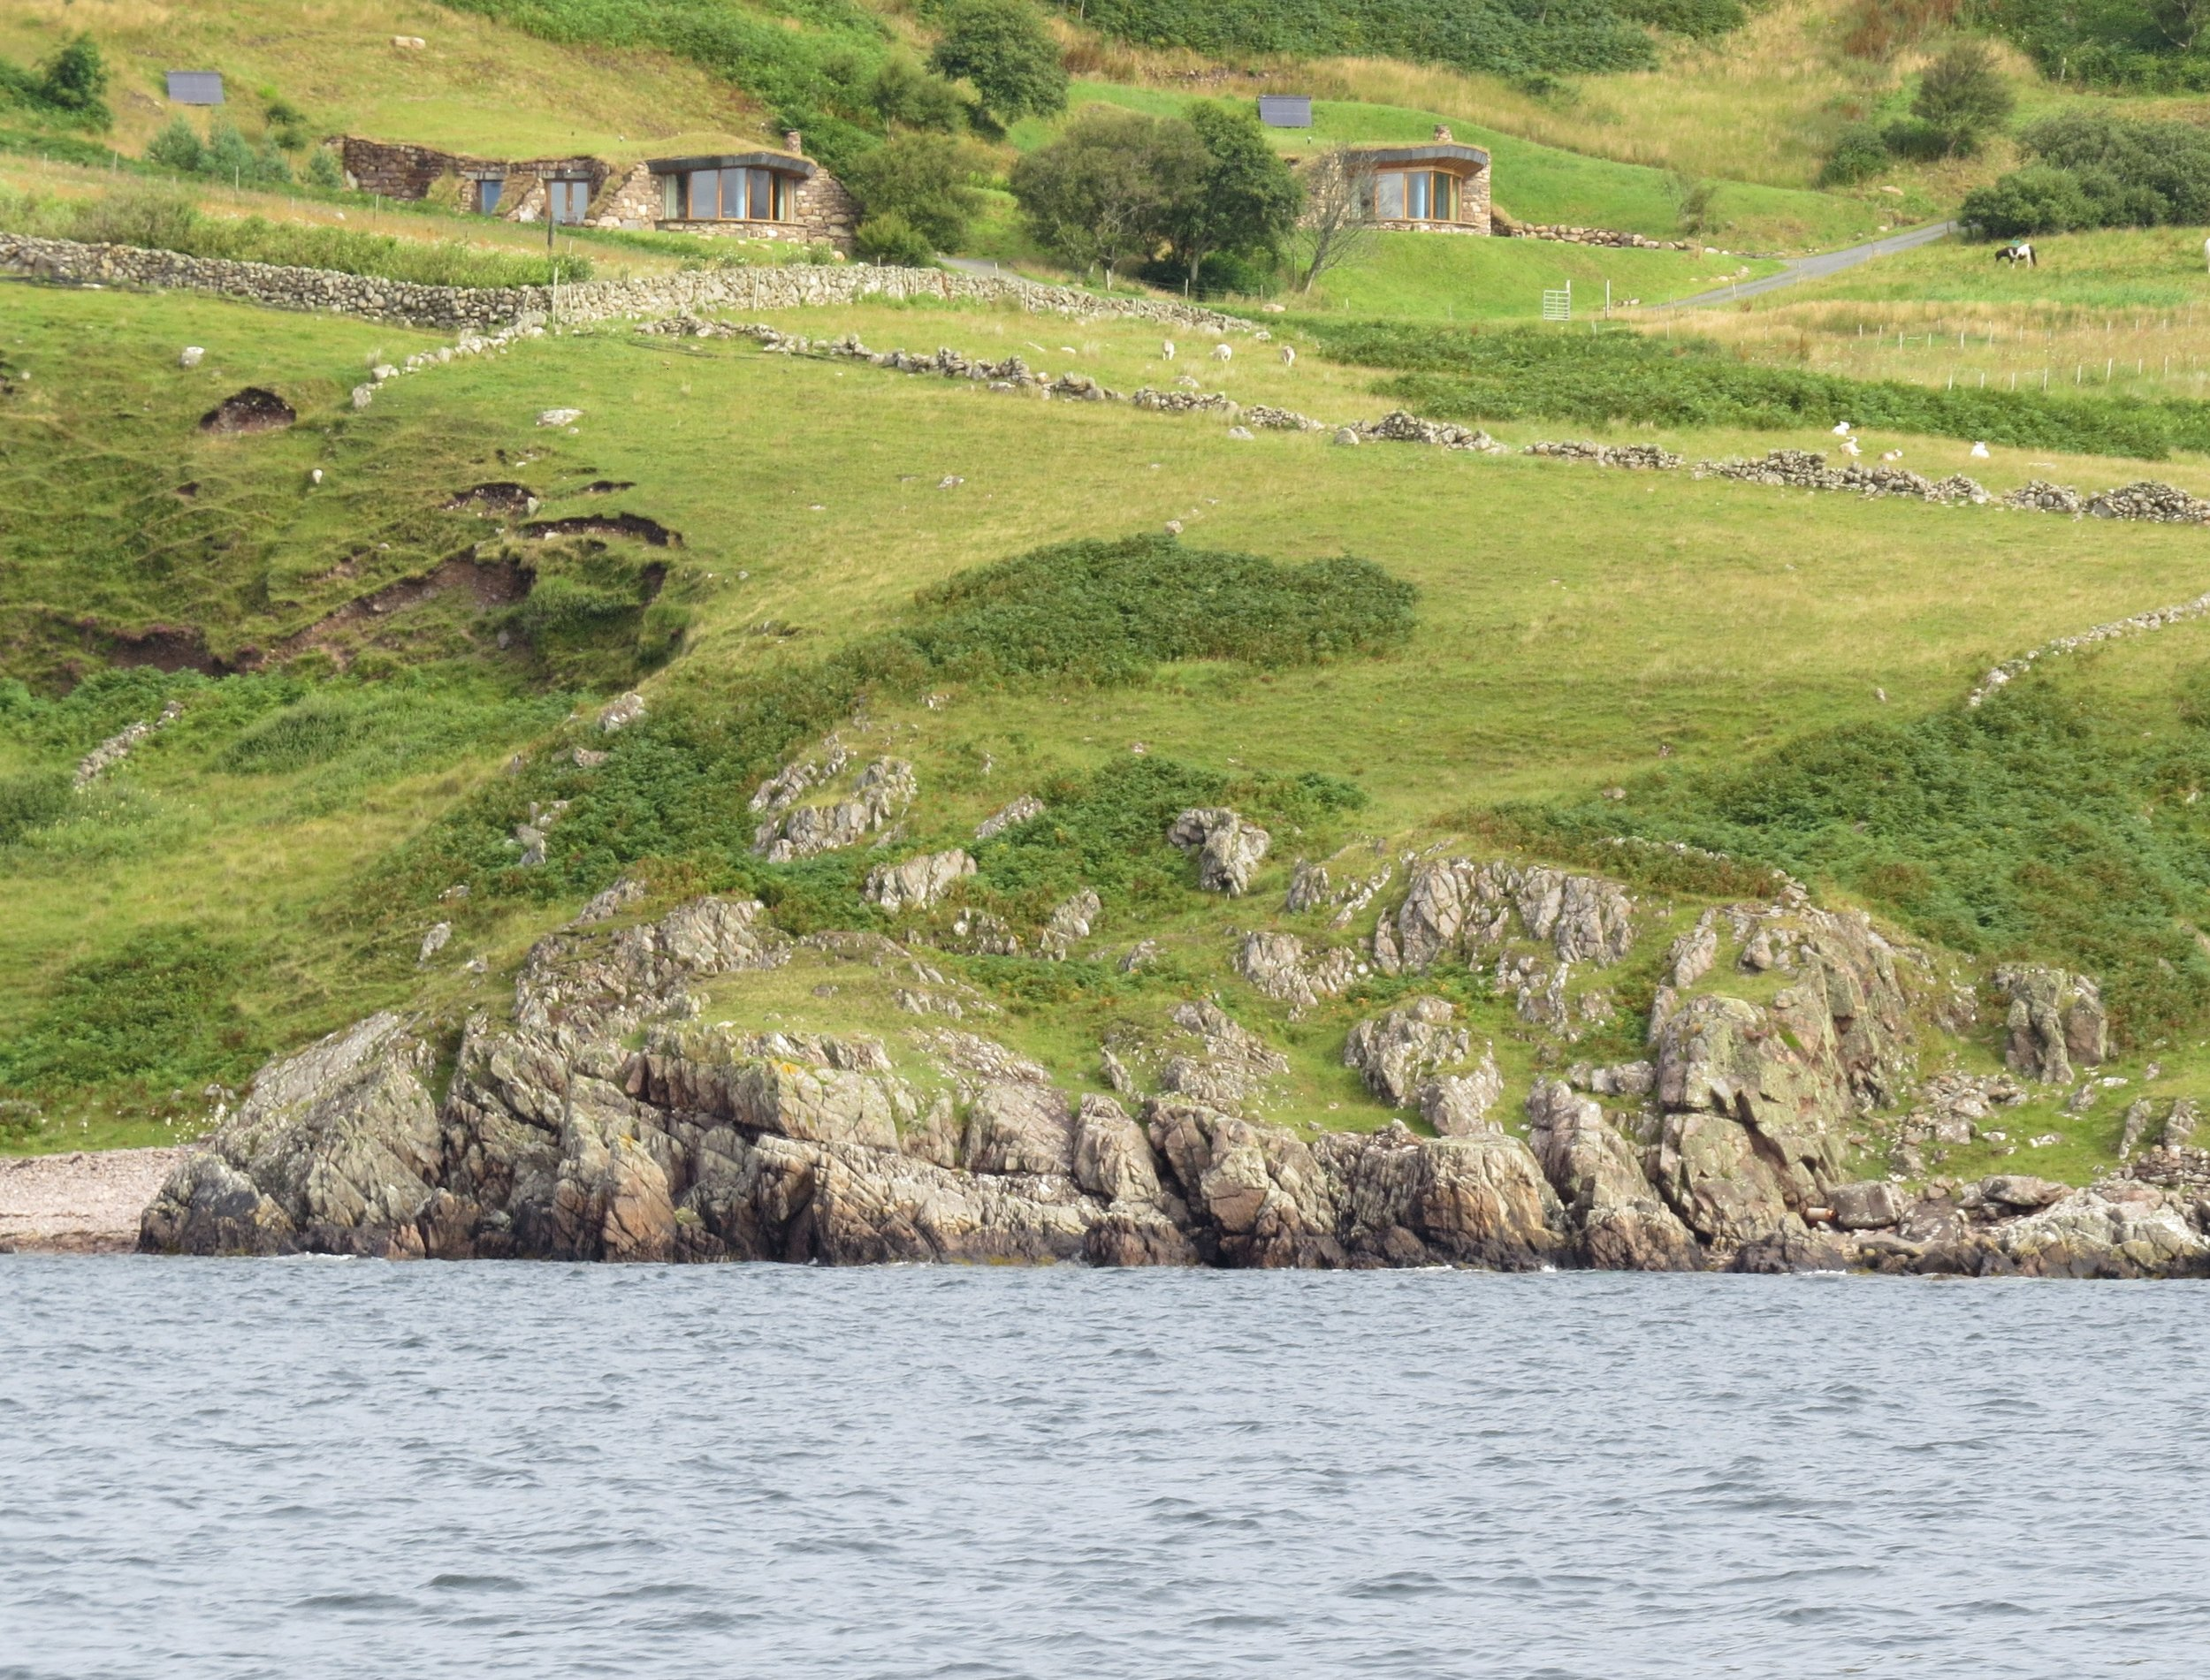 The_Brochs from the sea 4_high_resolution.jpg